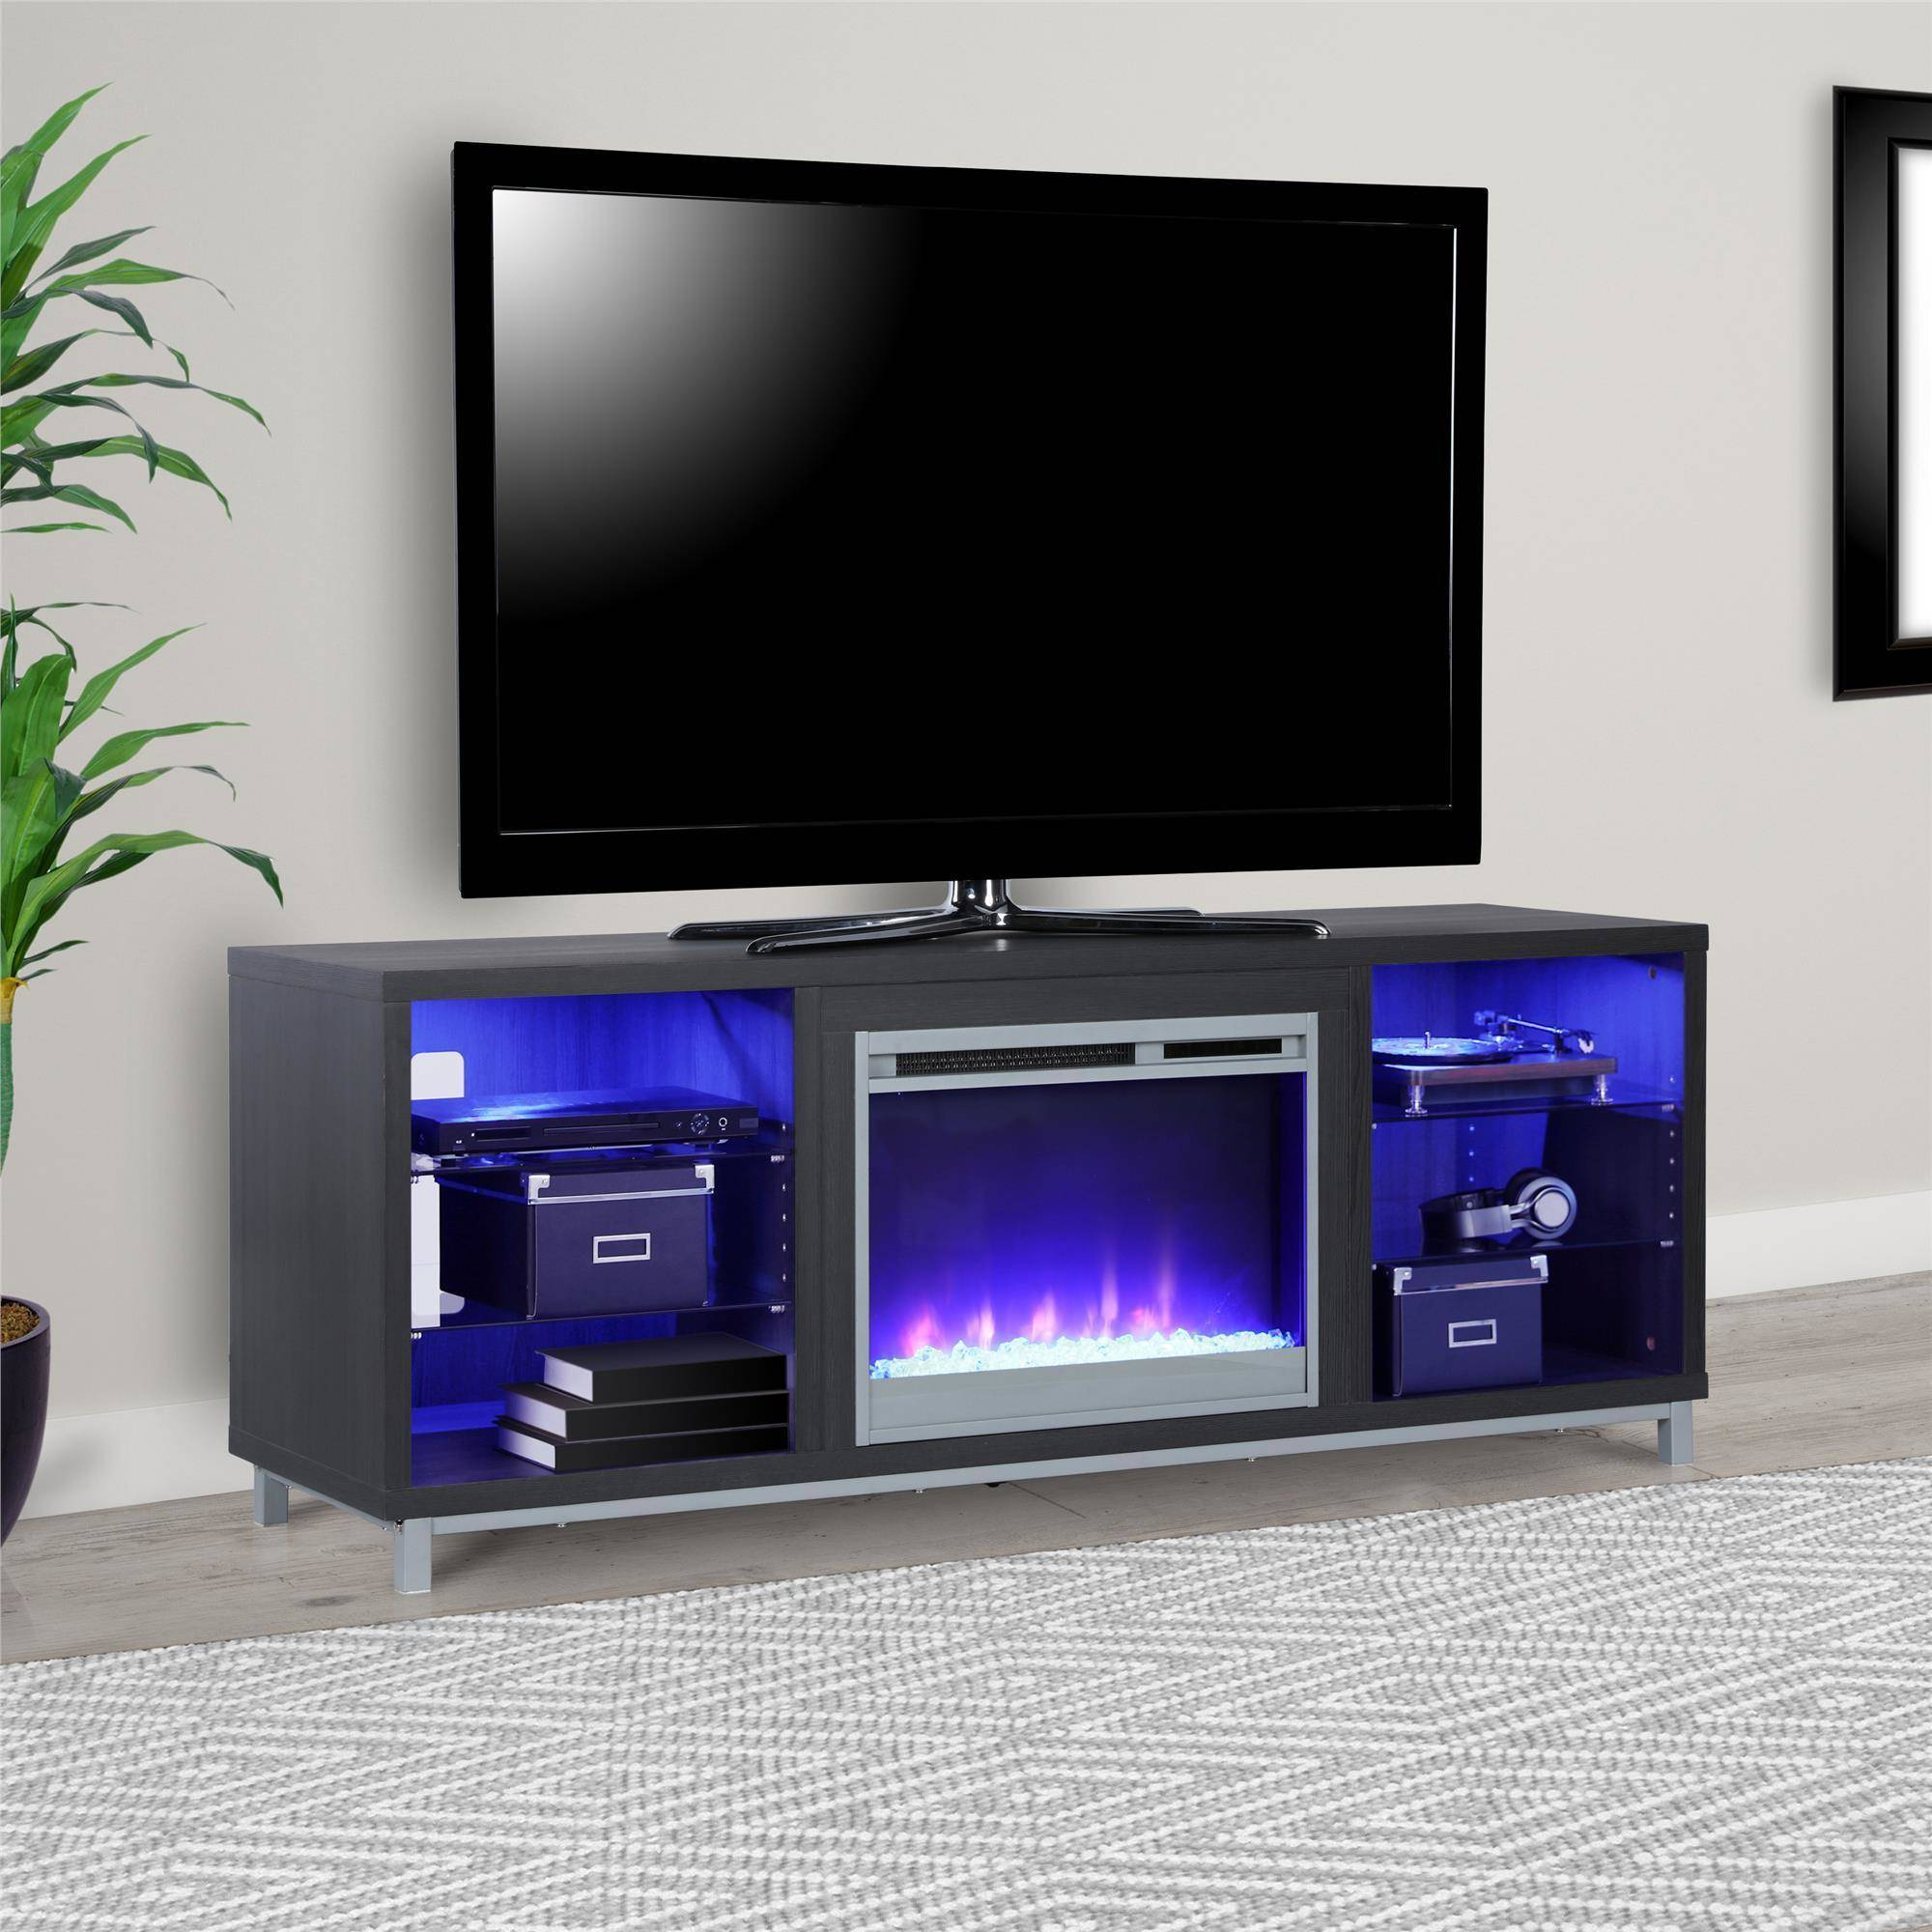 Walmart Fireplace Tv Stand Best Of Ameriwood Home Lumina Fireplace Tv Stand for Tvs Up to 70